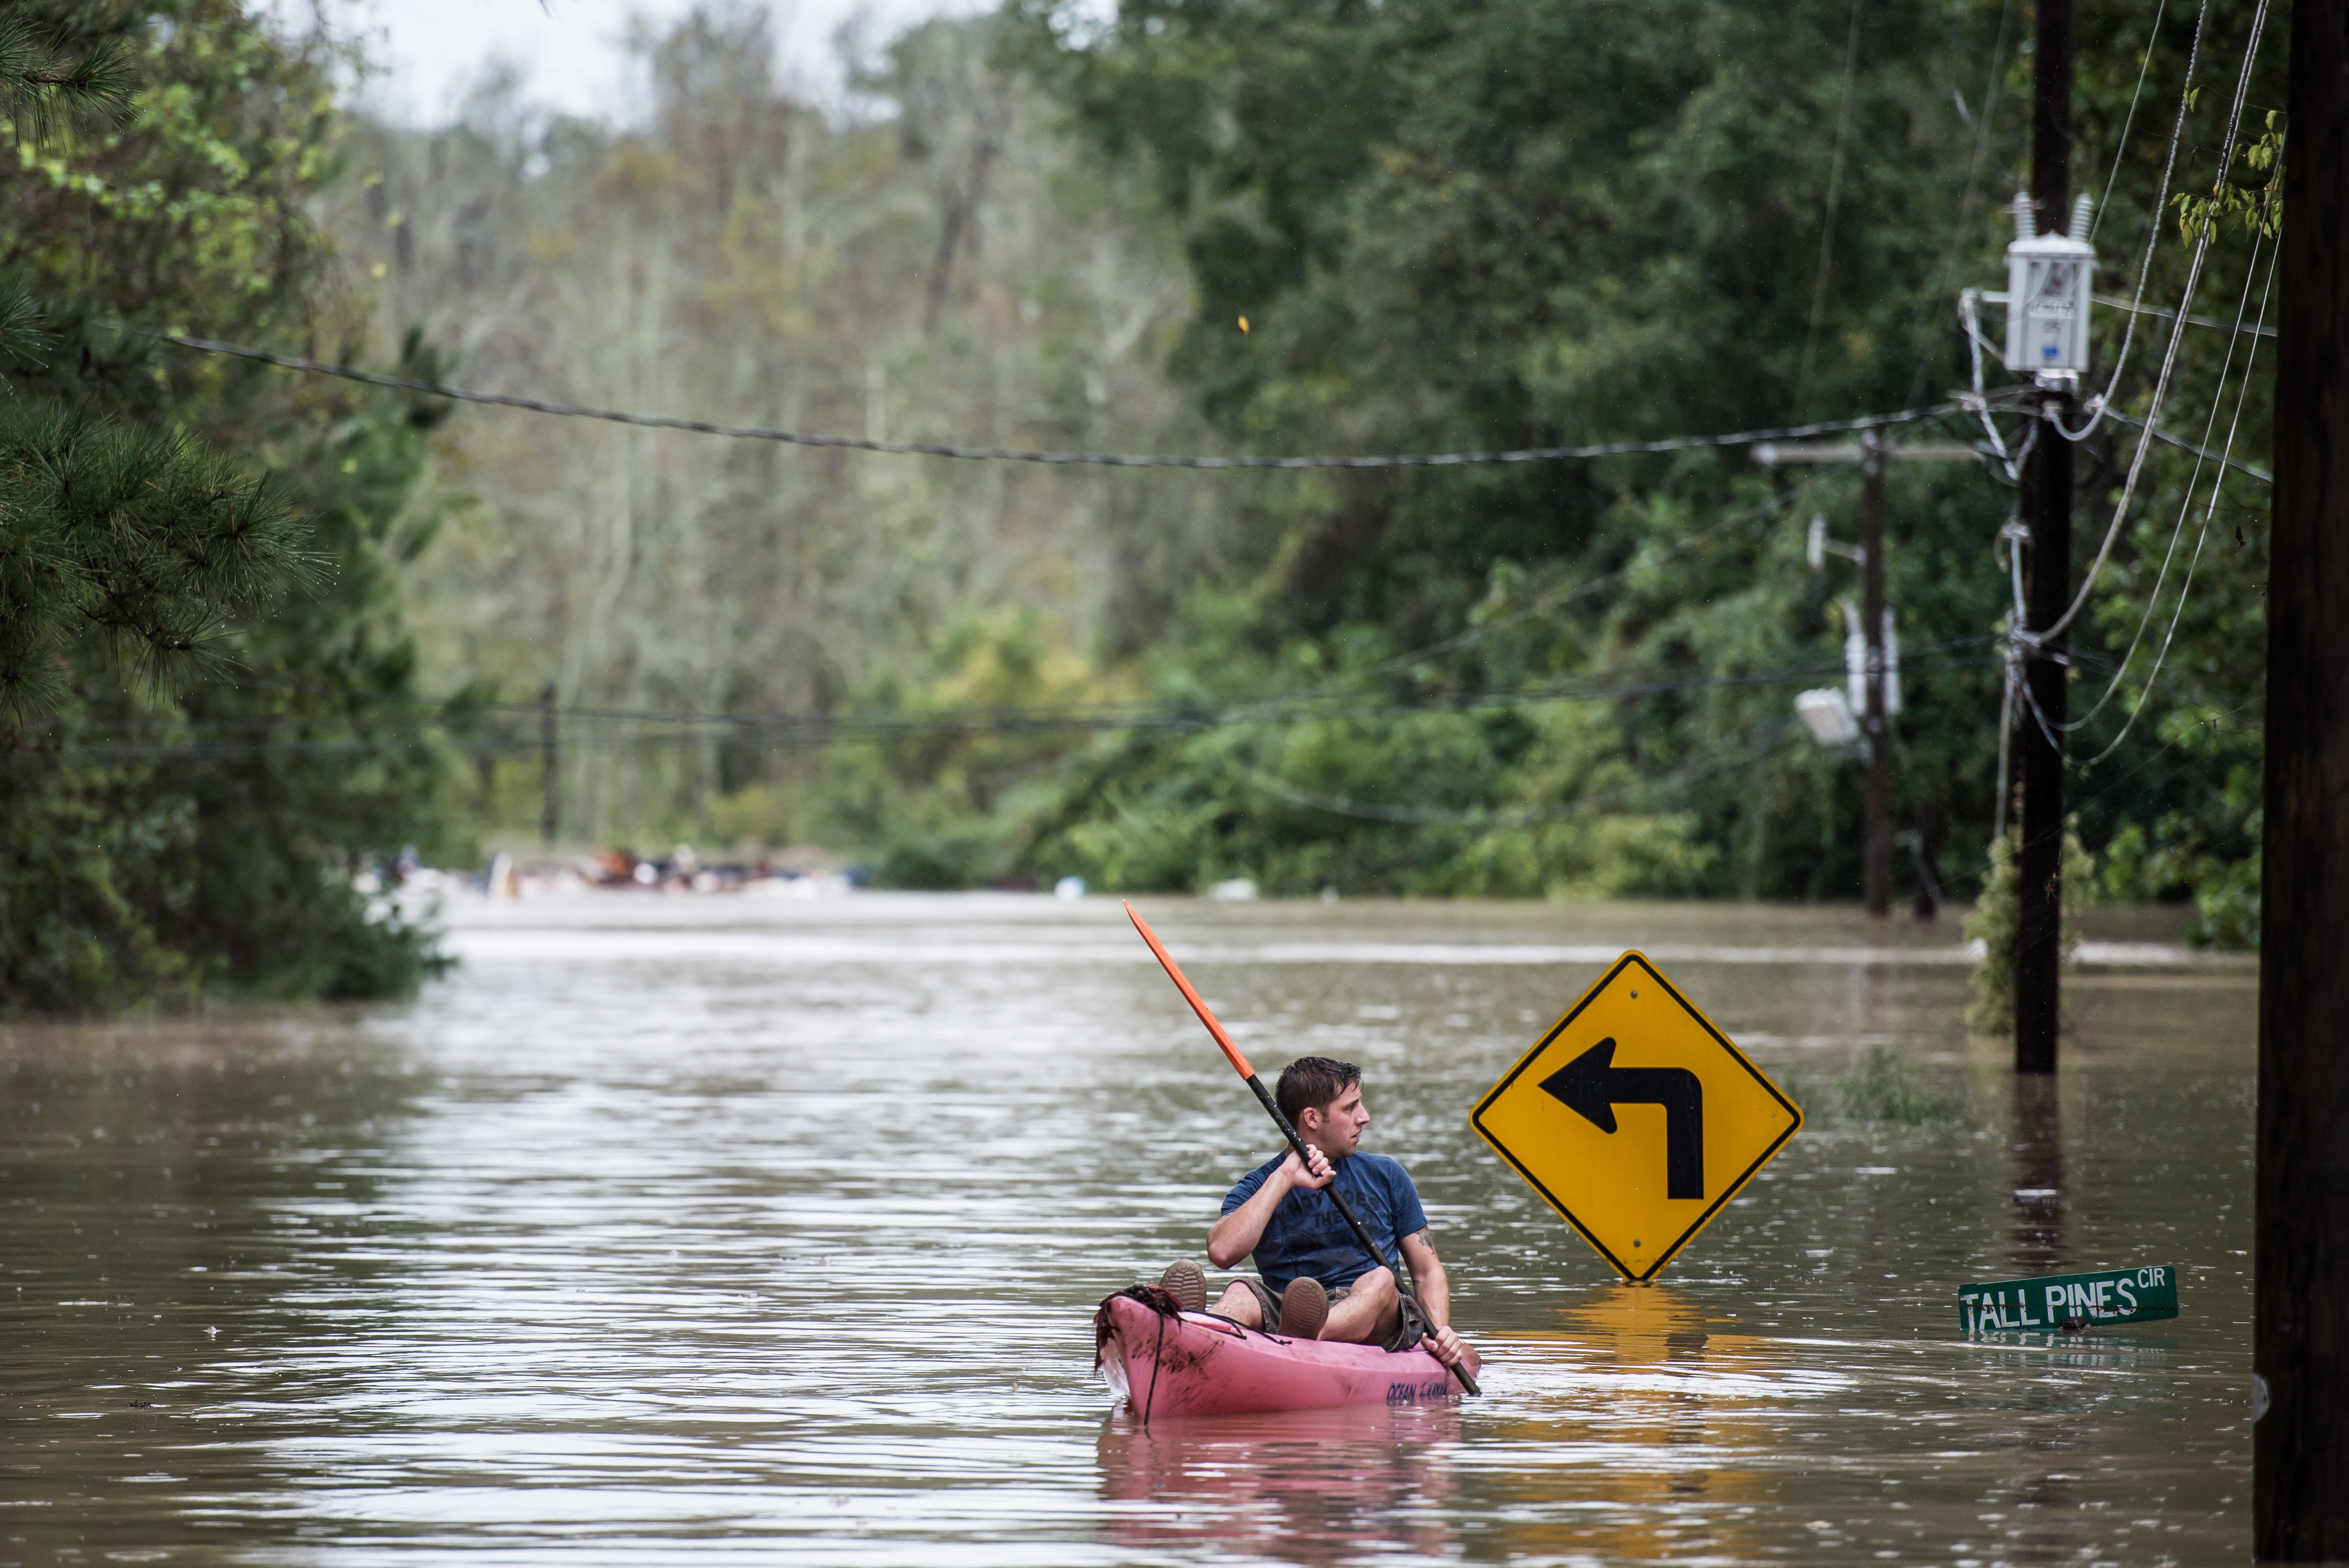 A man kayaking on Tall Pines Circle in Columbia, South Carolina on October 4, 2015. photo: paul fayfield/getty images